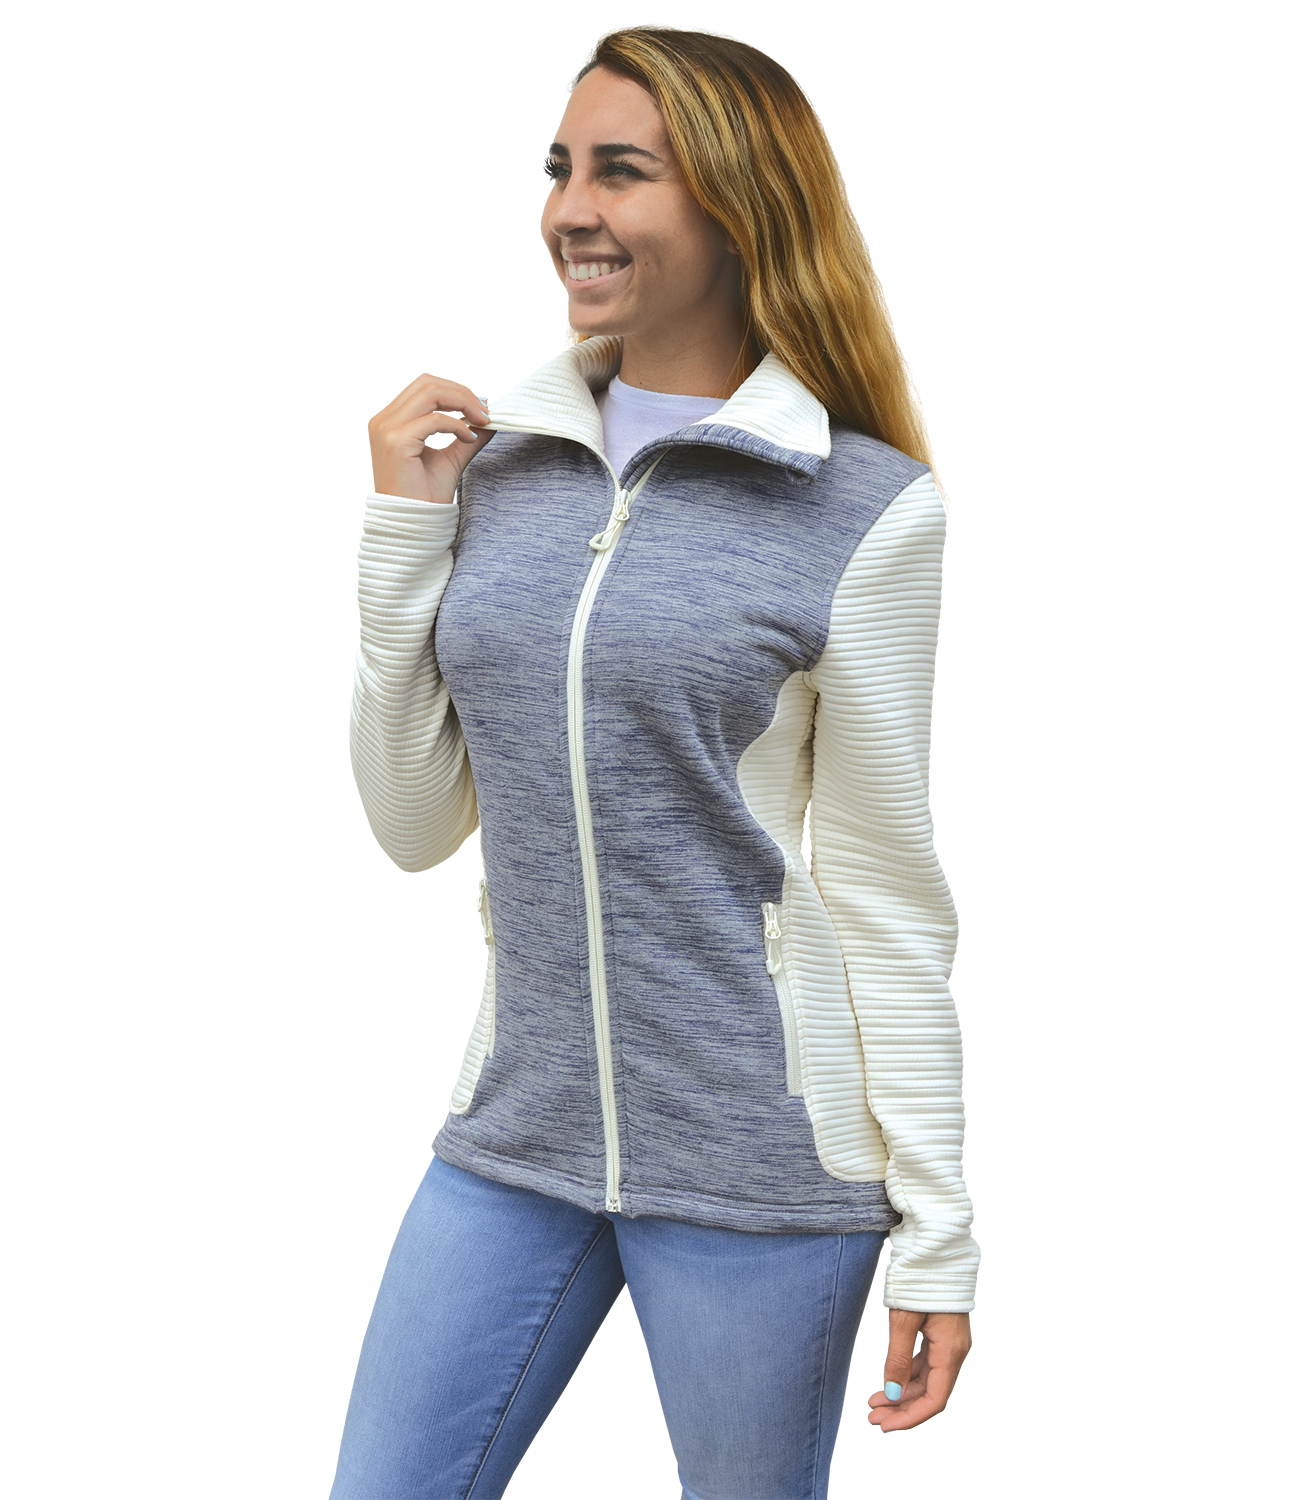 renegade power stretch 3d fleece jacket, collar, cream, white blanks for embroidery wholesale